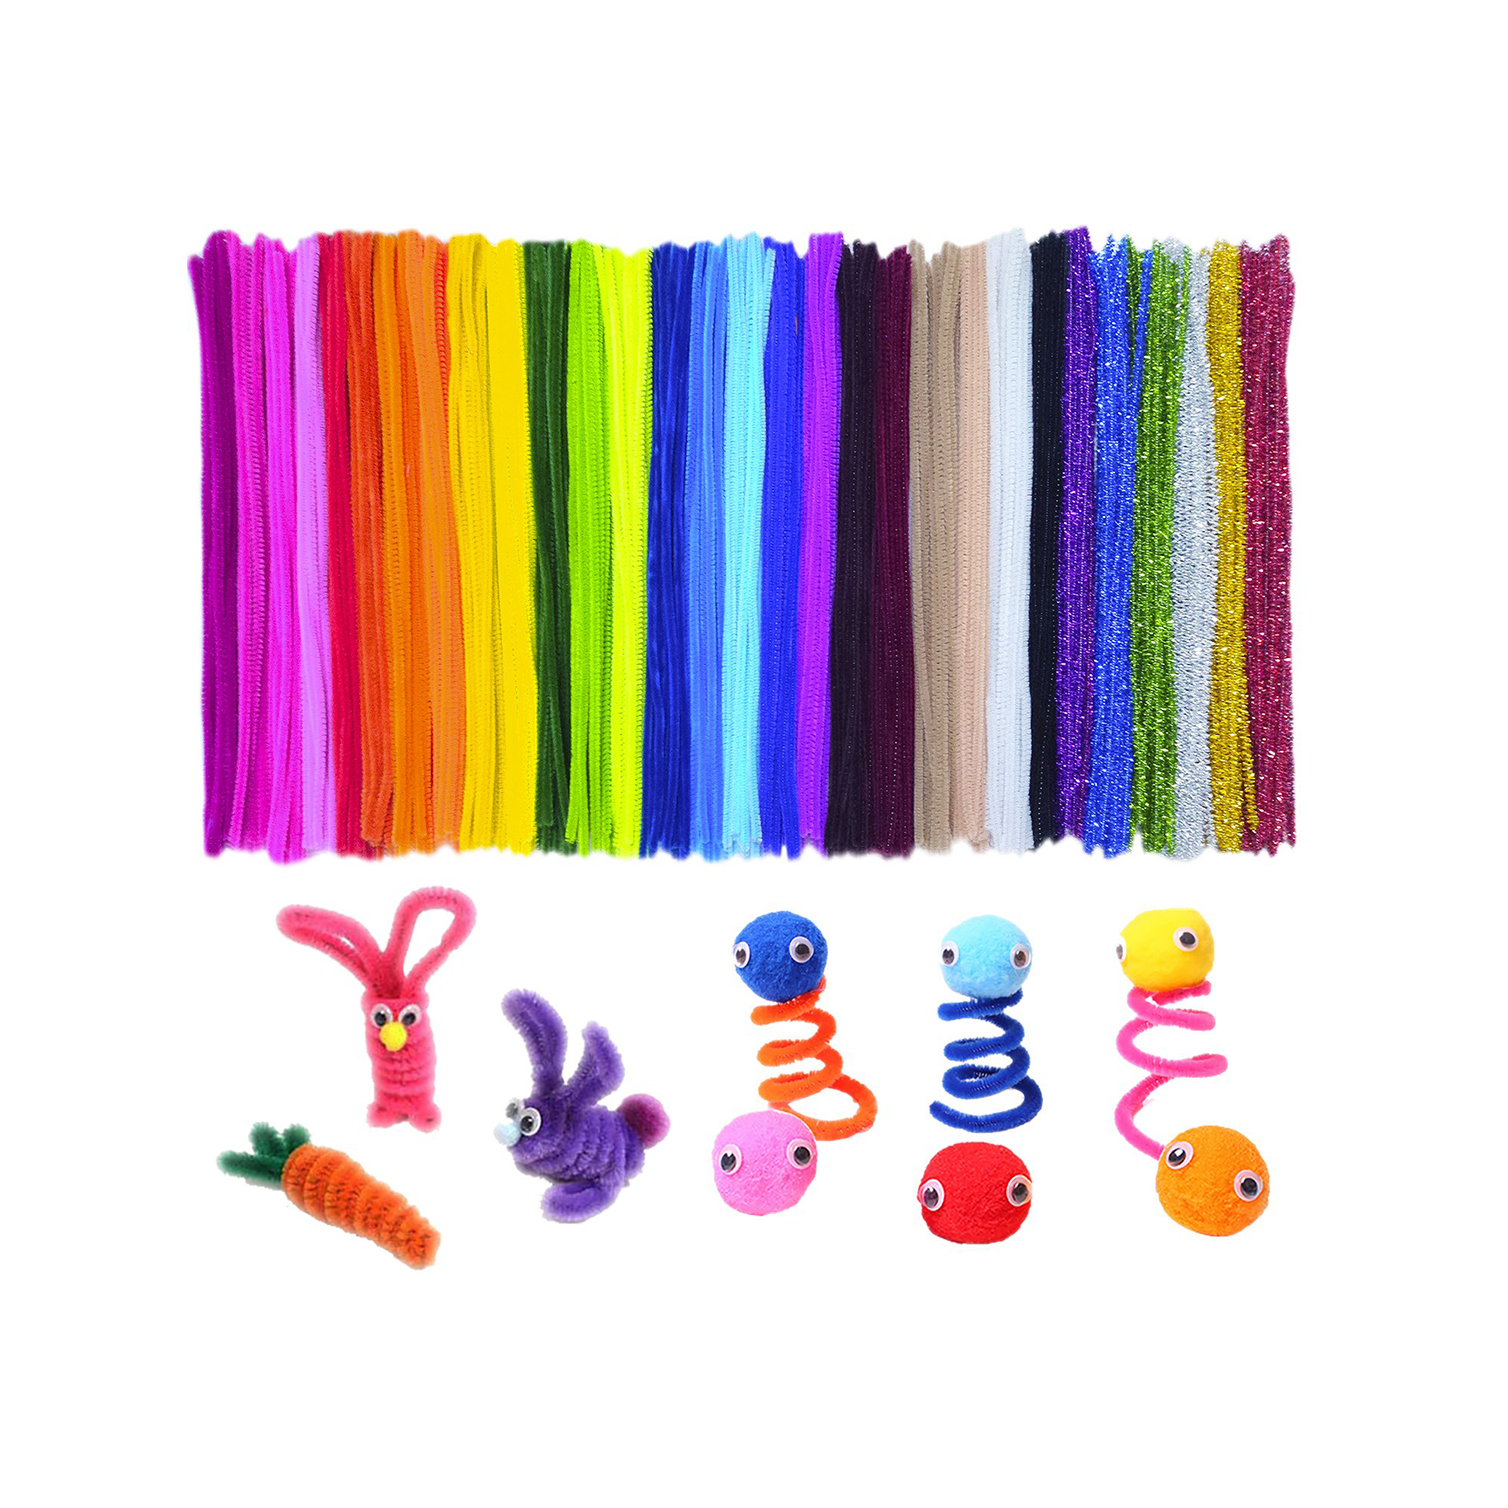 Grab our favorite pipe cleaners for your toddler activities